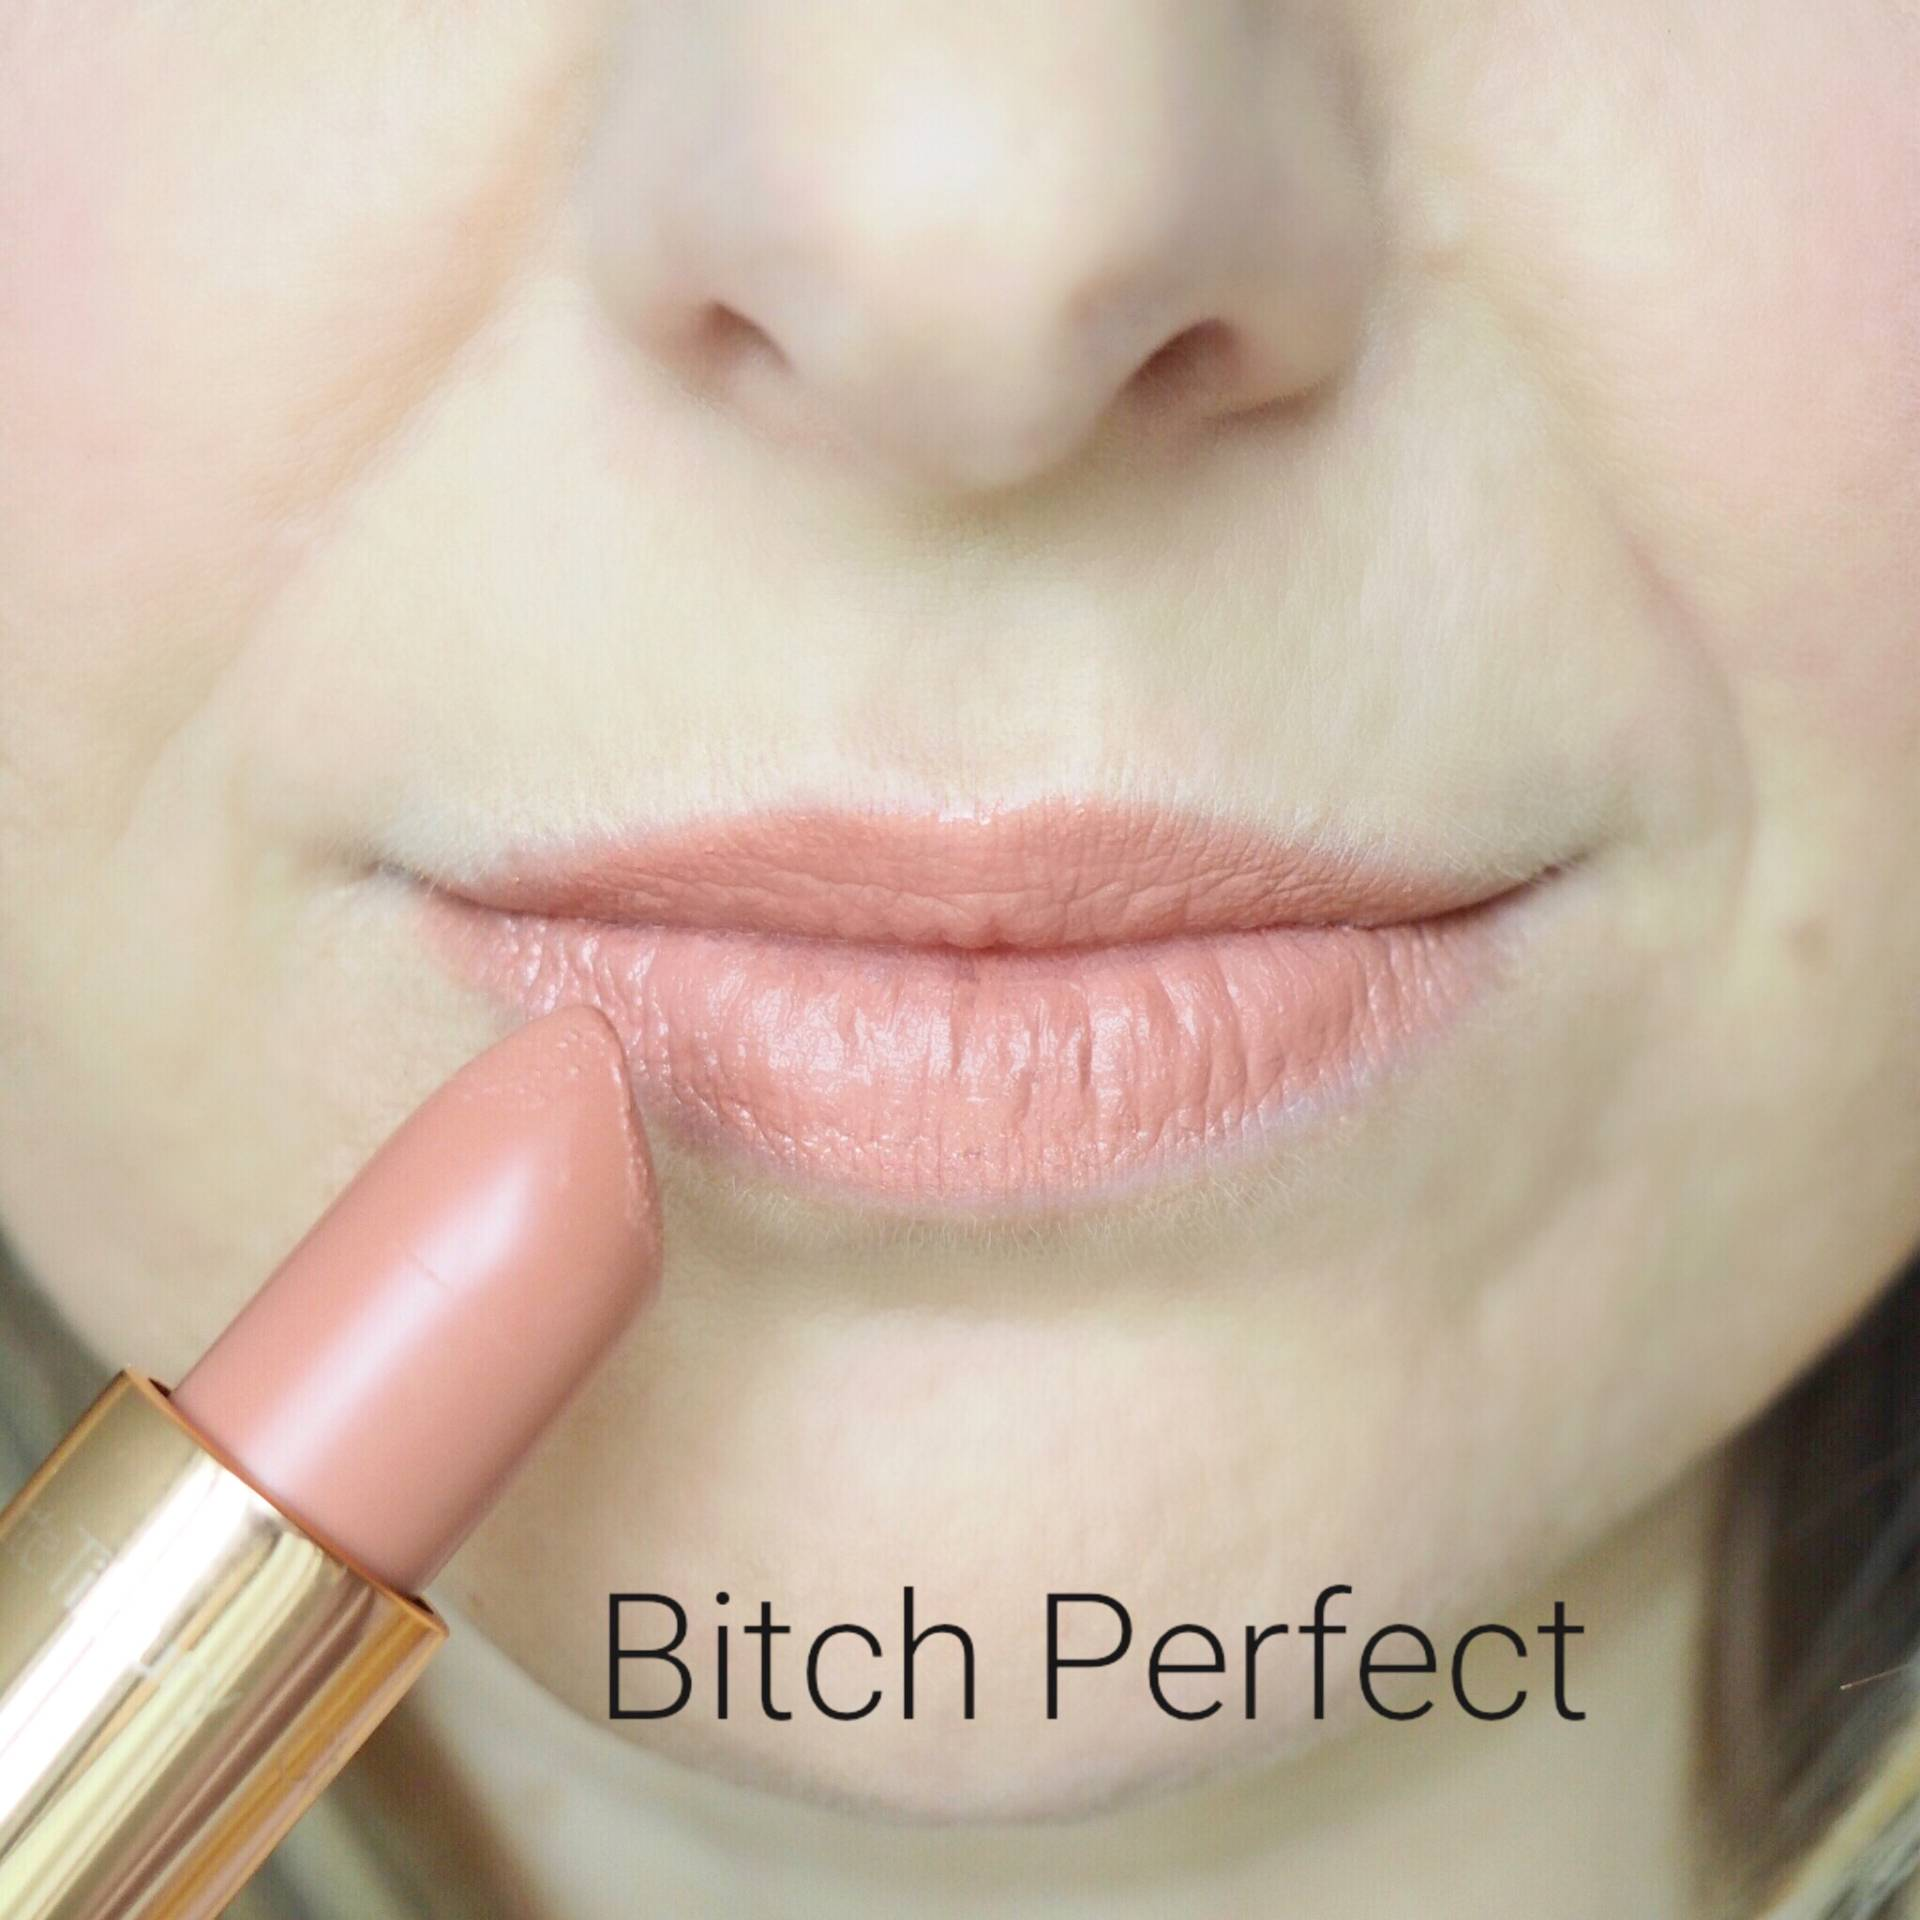 Charlotte Tilbury Bitch Perfect Lipstick Swatches